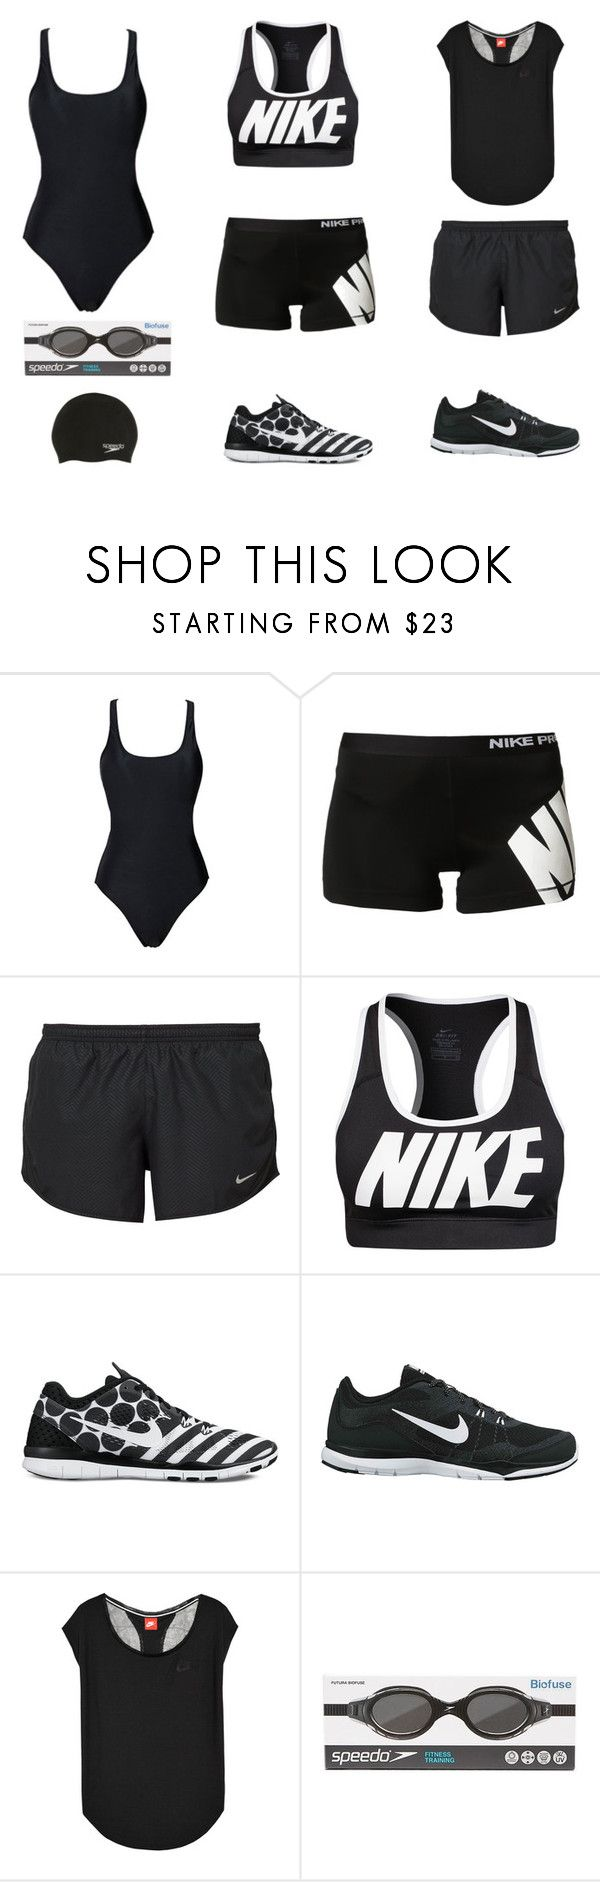 """""""PRACTICE TRIATHLON"""" by stylev ❤ liked on Polyvore featuring NIKE, Speedo, women's clothing, women's fashion, women, female, woman, misses and juniors"""